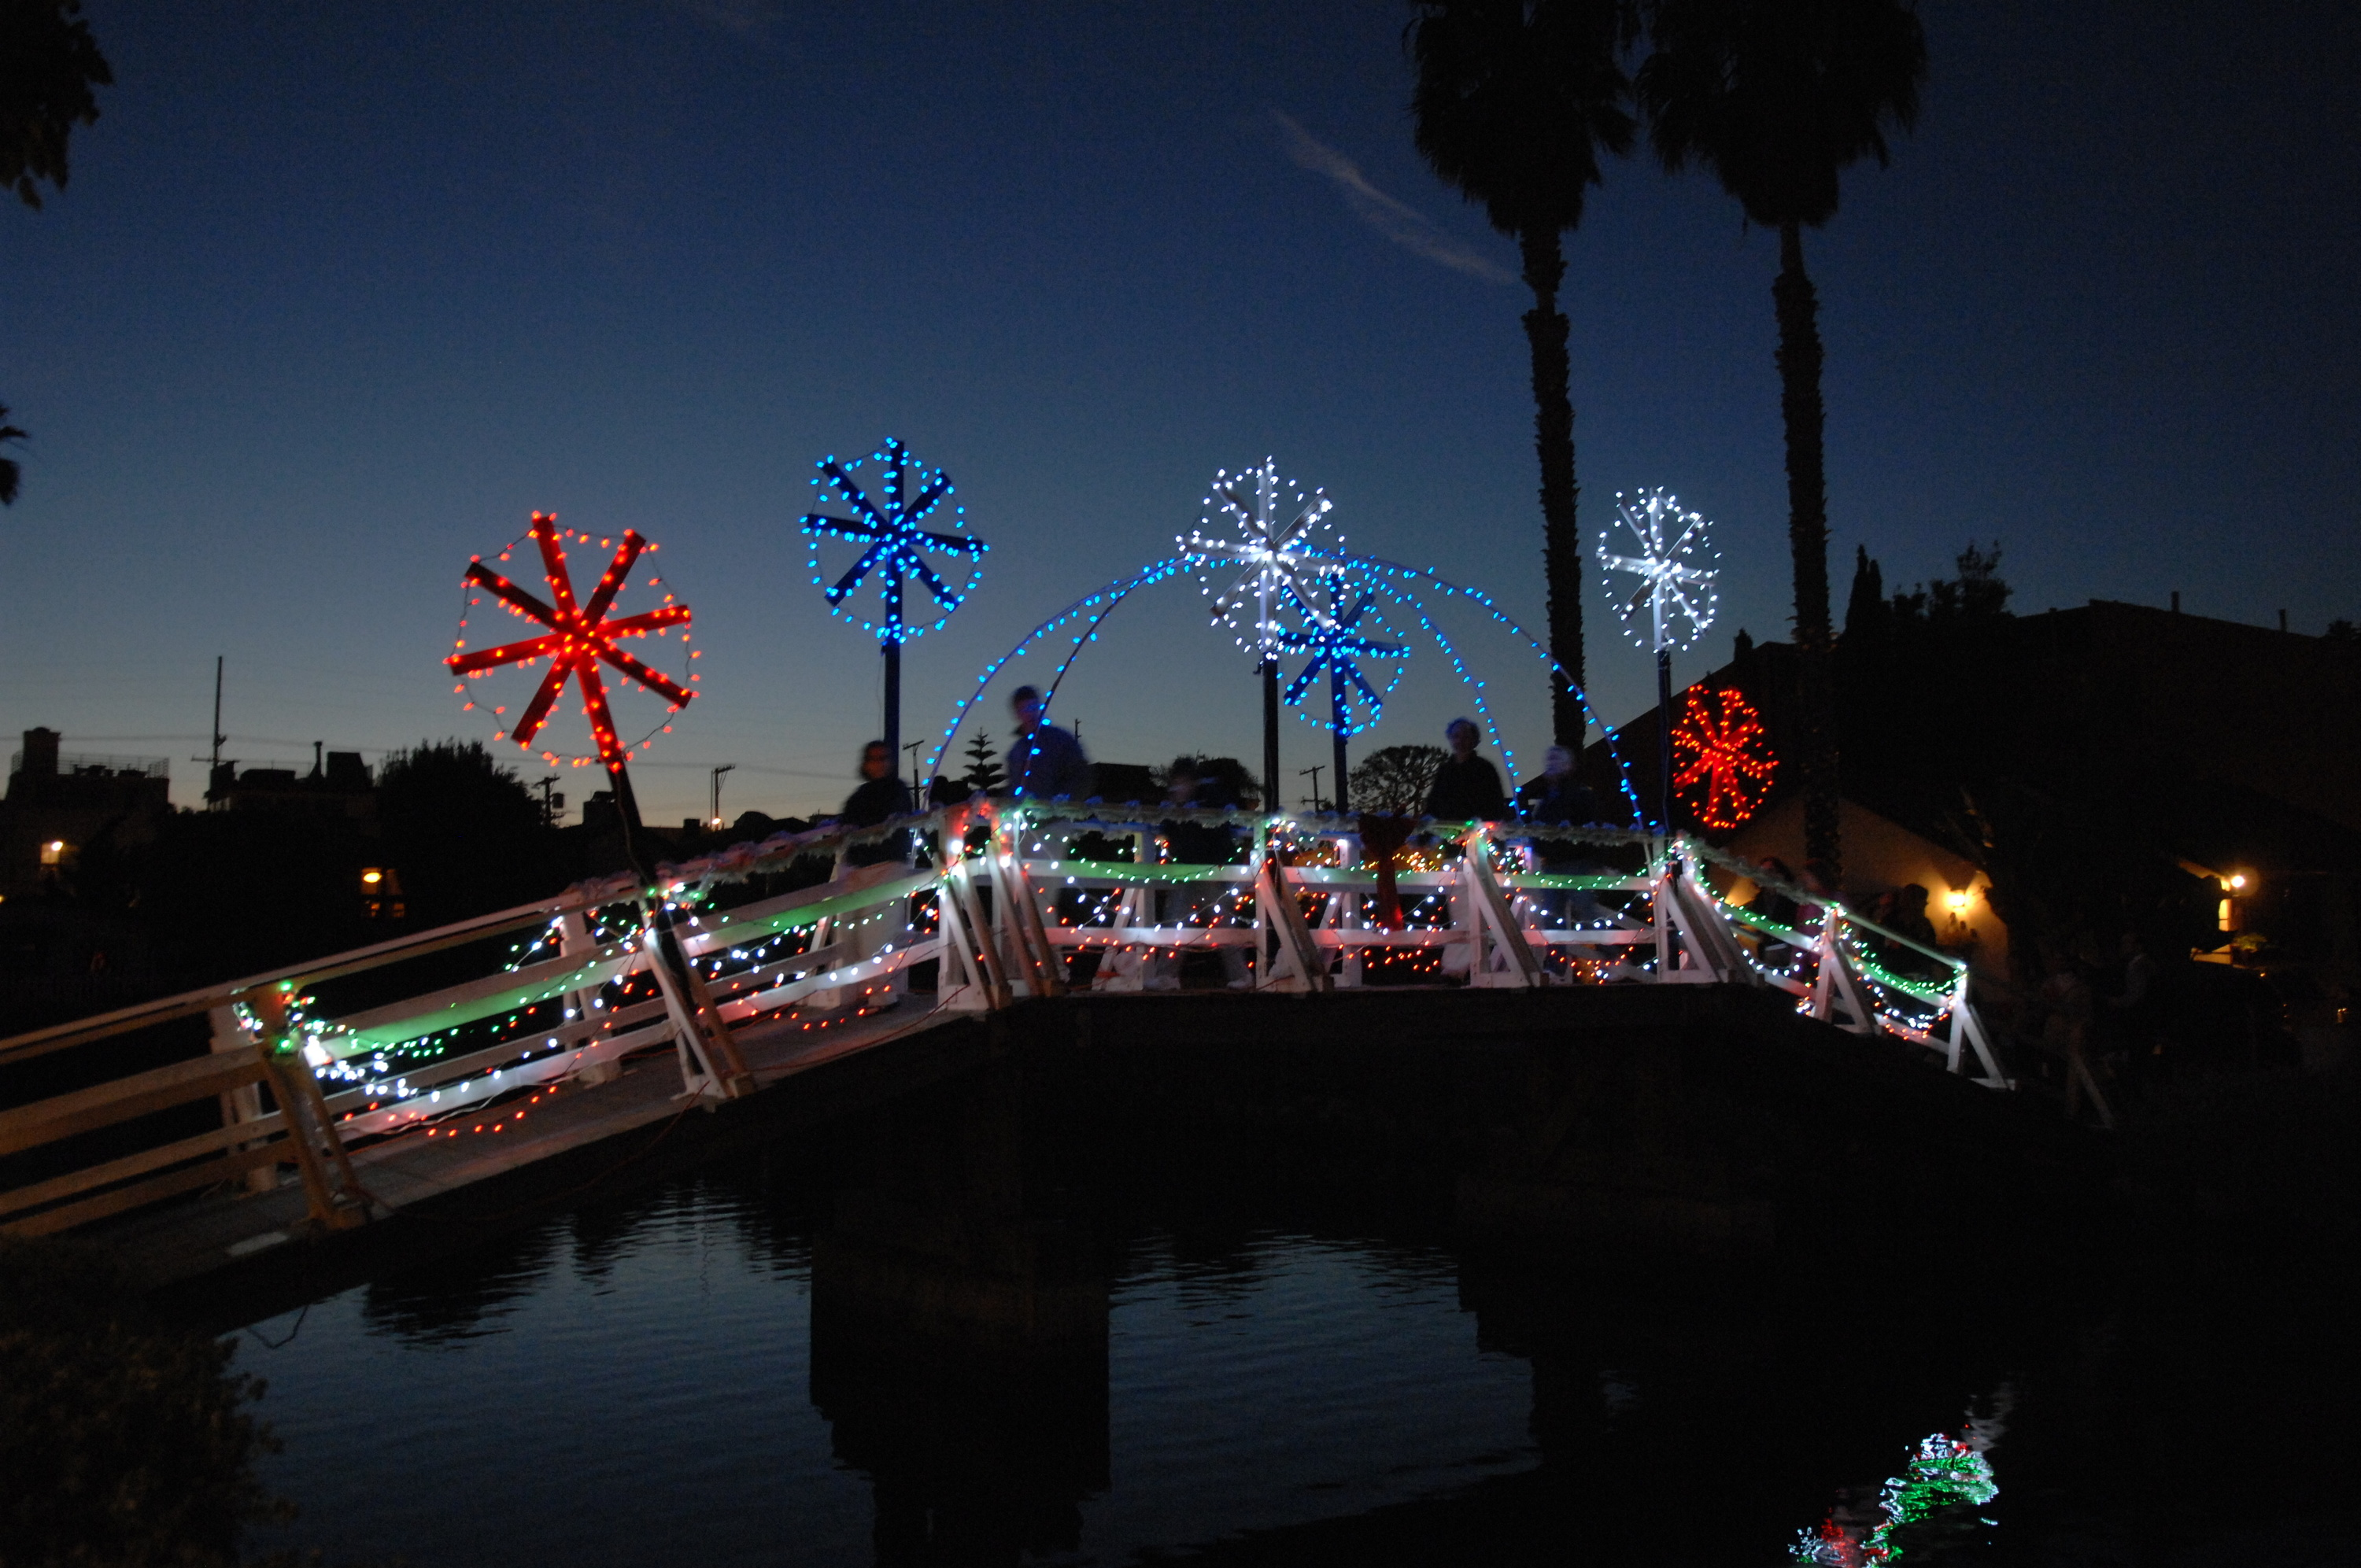 Where to see Christmas lights in L.A.